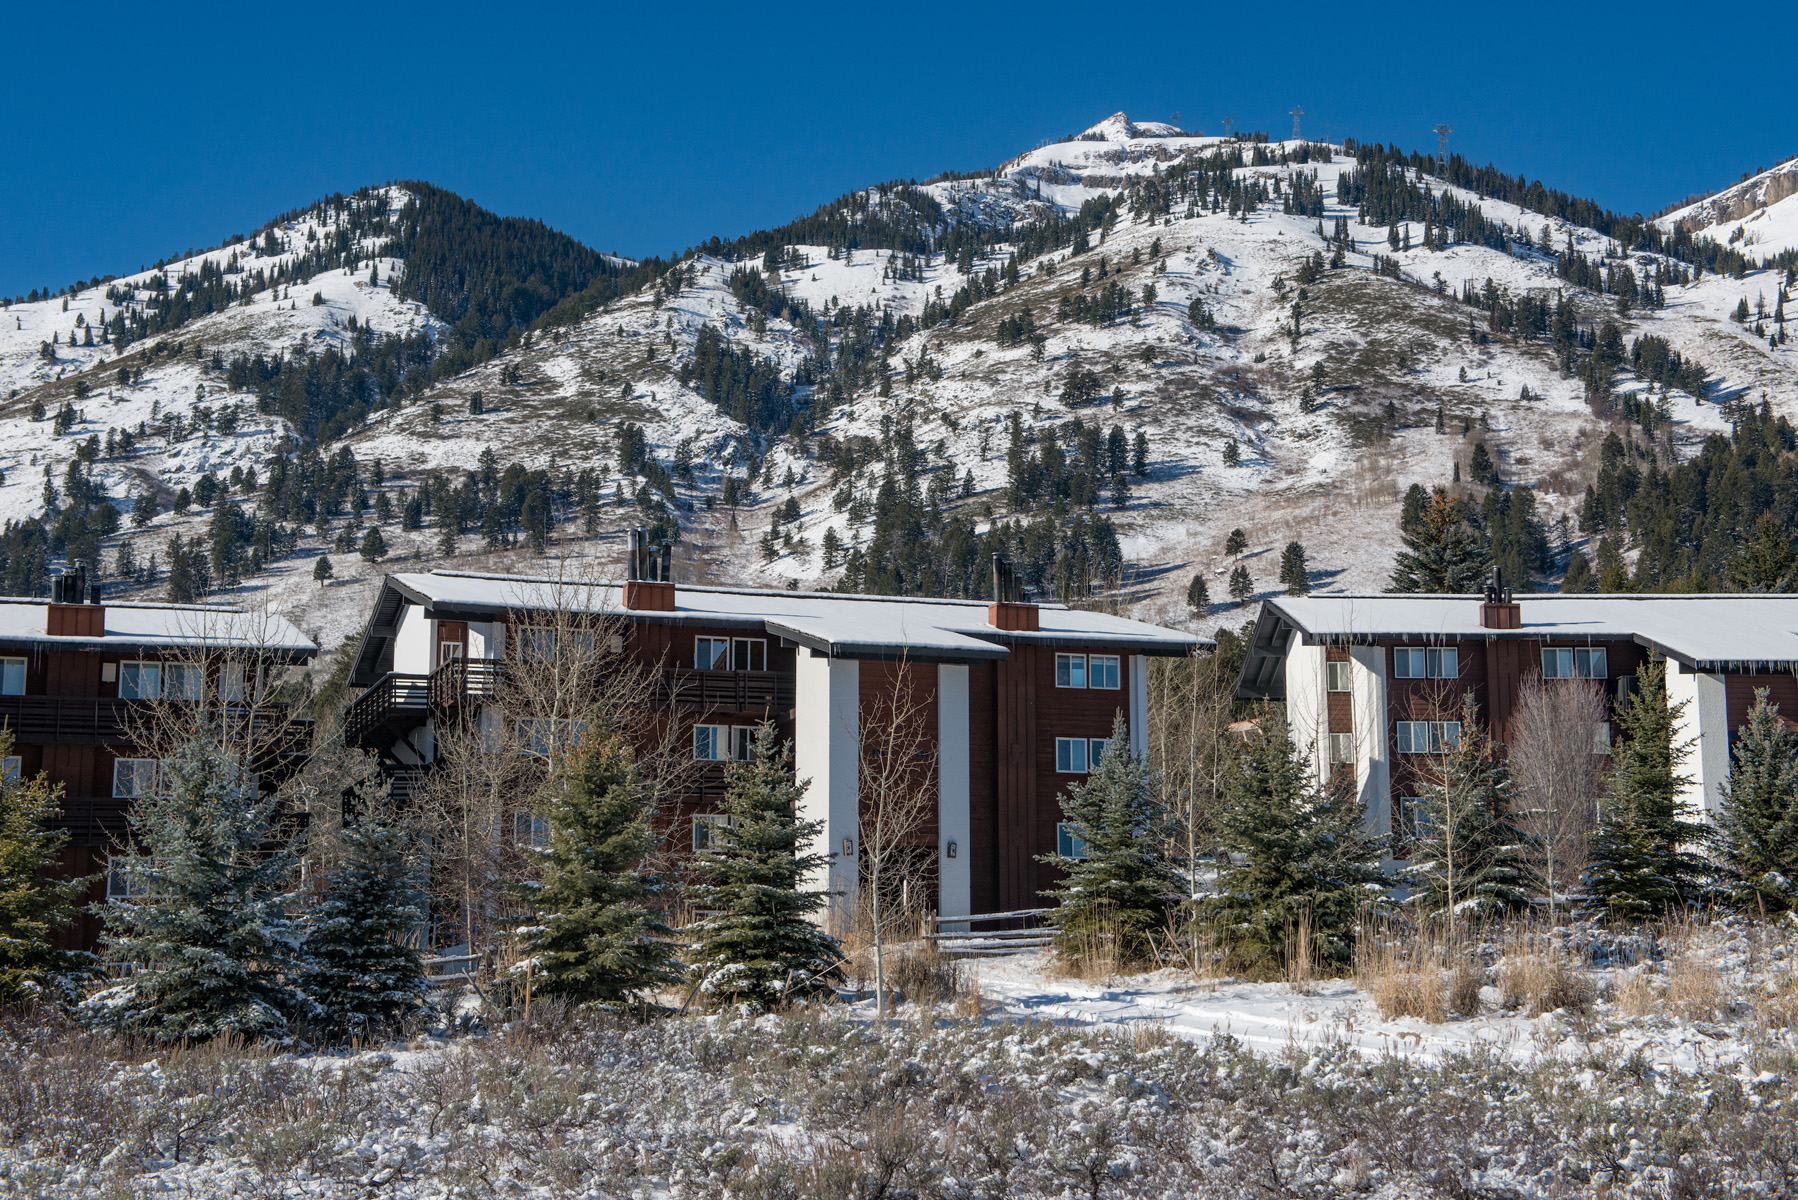 Property For Sale at Charming Teton Village Condo